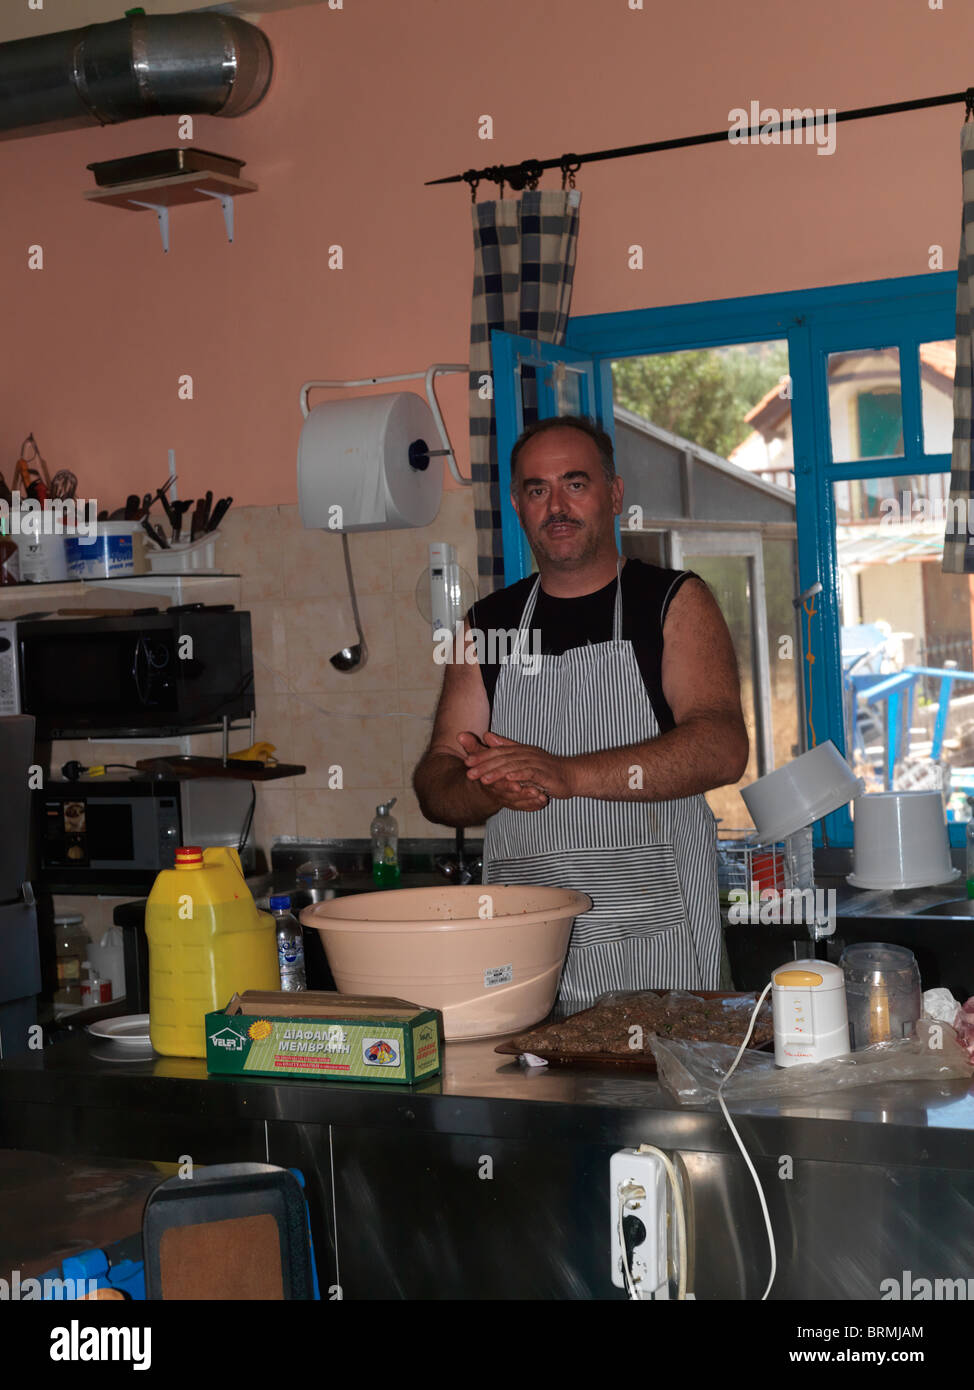 Limnionas Samos Greece Man Cooking In Restaurant Kitchen Stock ...